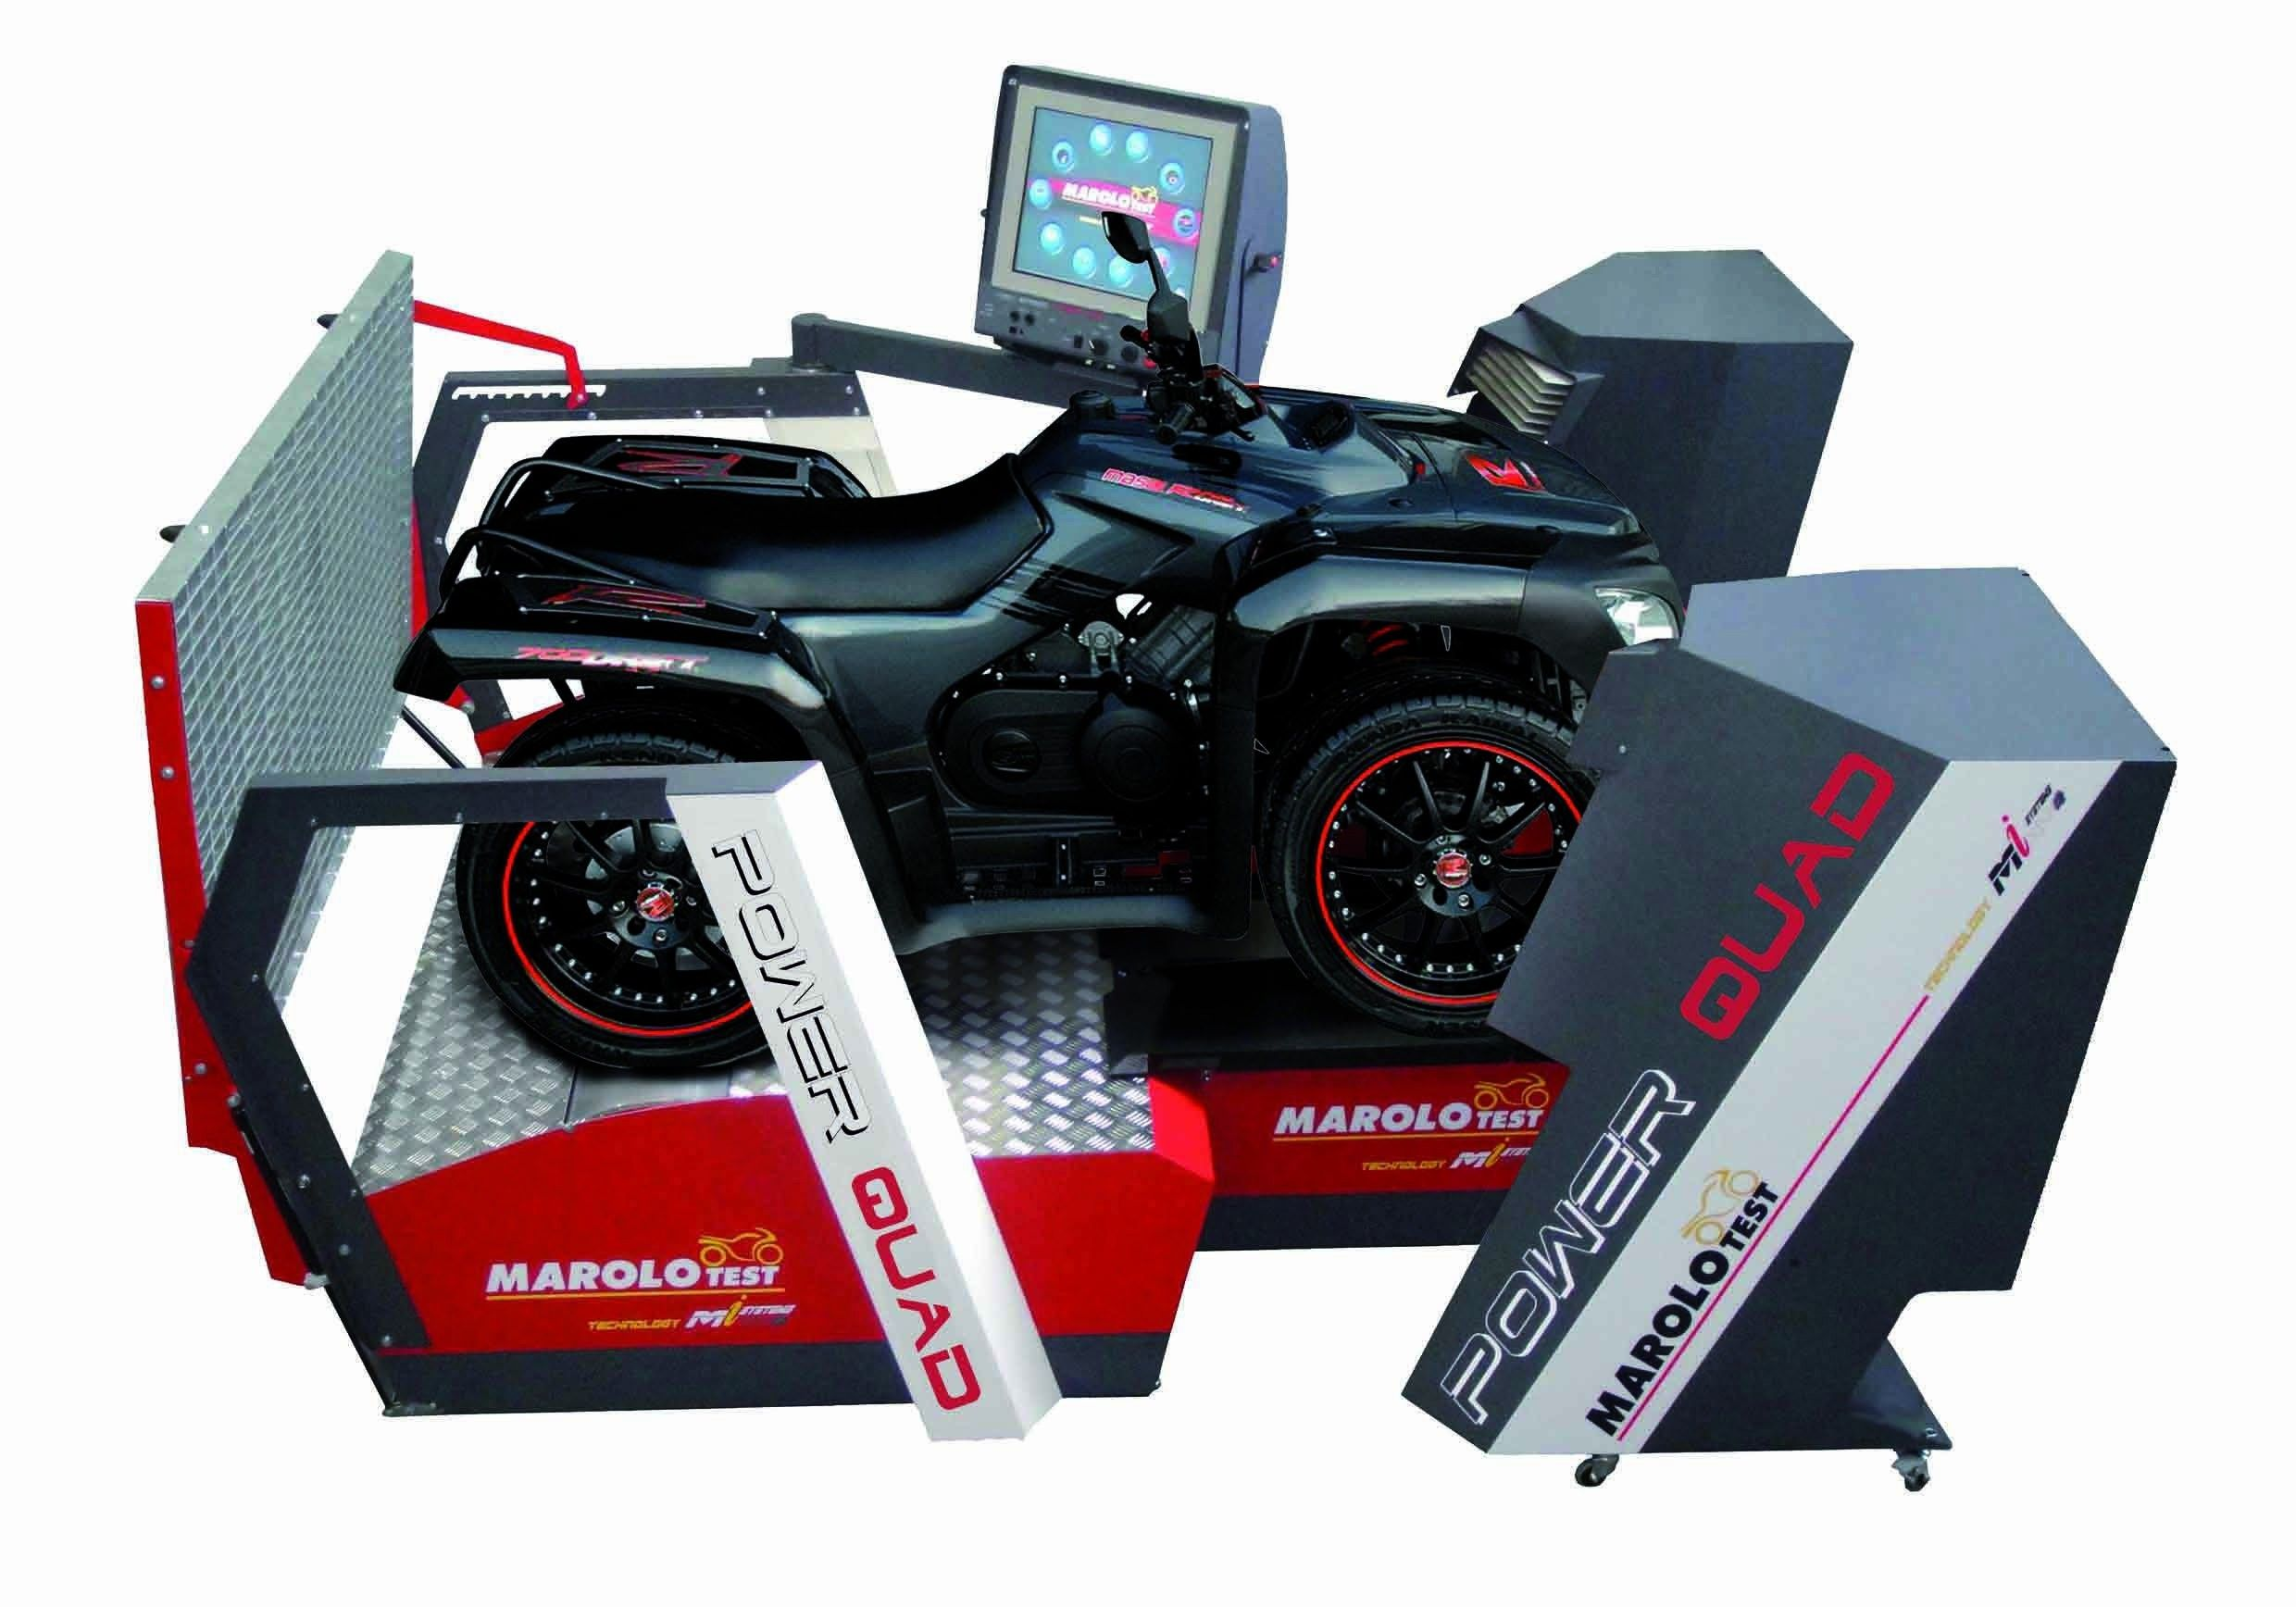 Banc De Puissance Moto Banc De Puissance Moto Banc De Puissance Vente Moto Center L Interet Du Banc Dynojet Est Da Graphic Card Toy Car Electronic Components